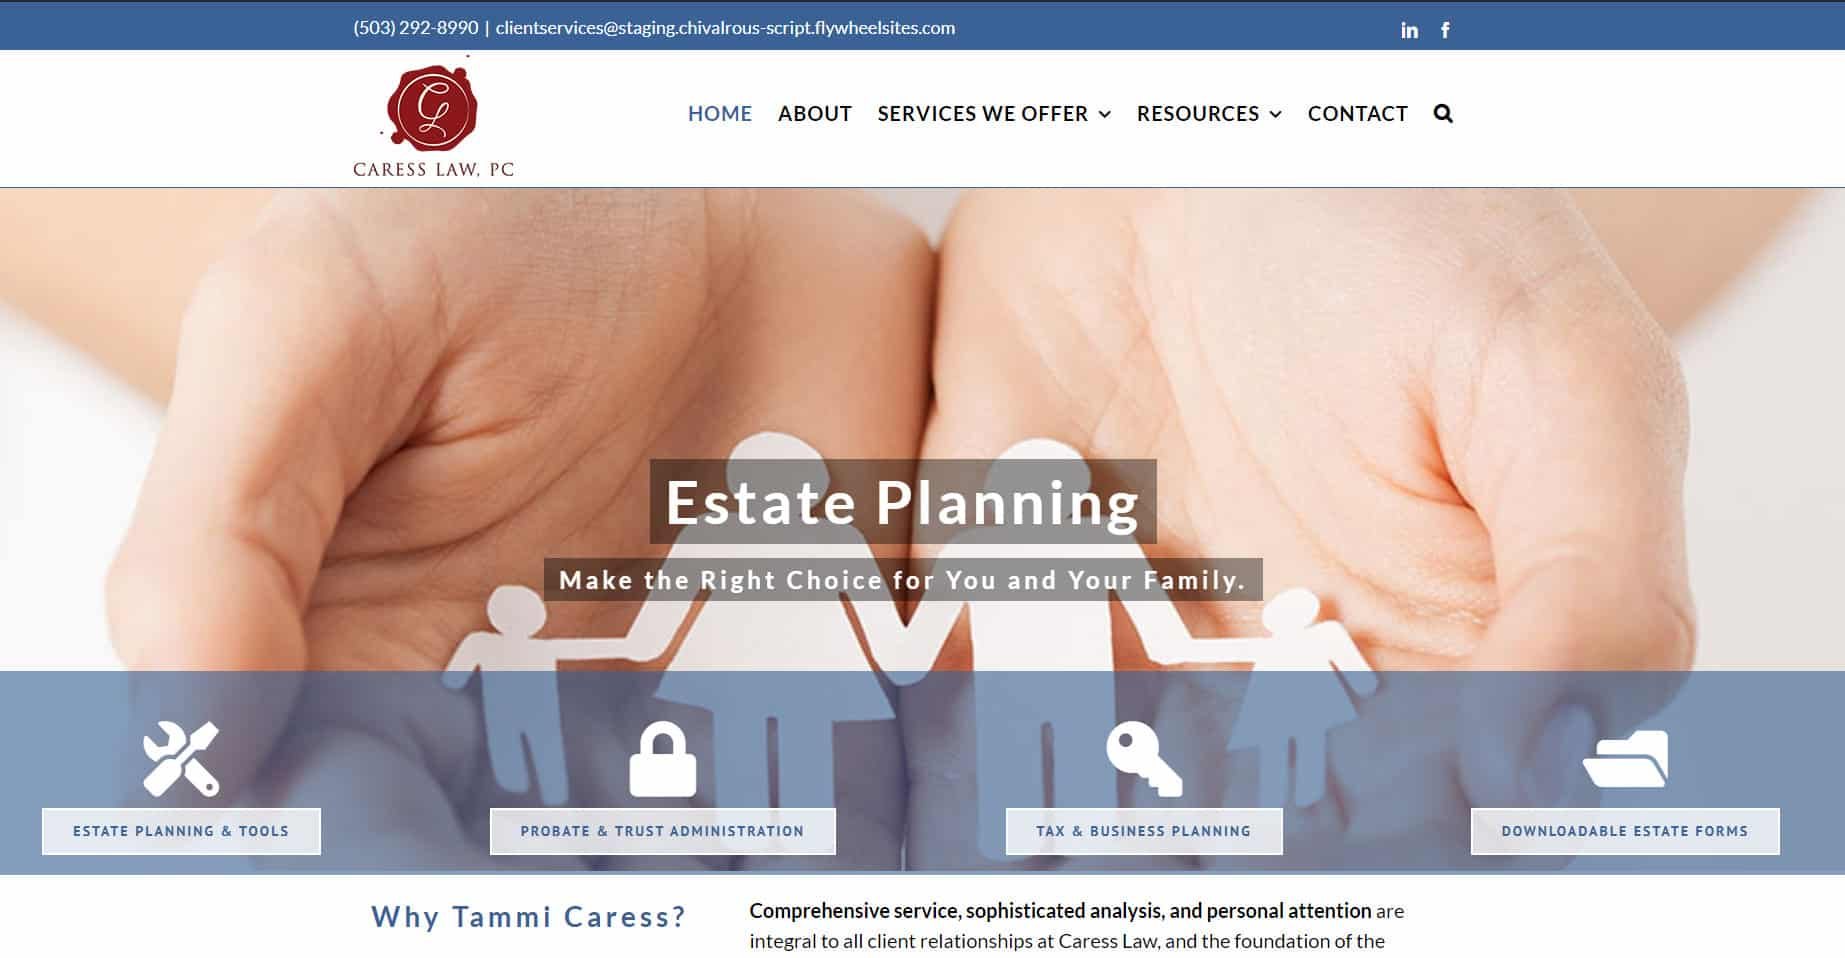 Caress_Law Service Based Websites